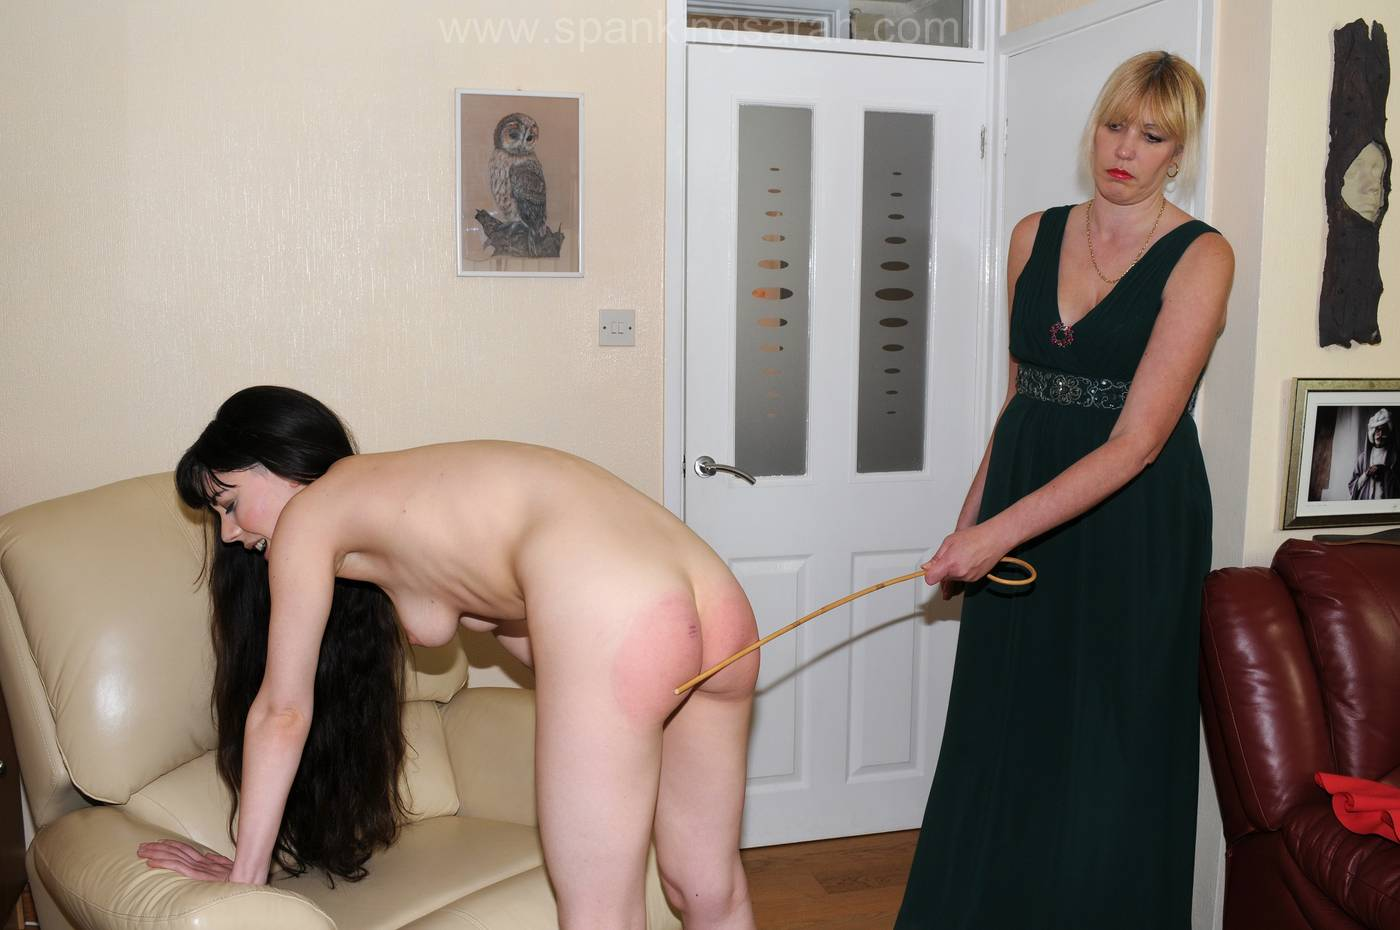 Have now man cane spank